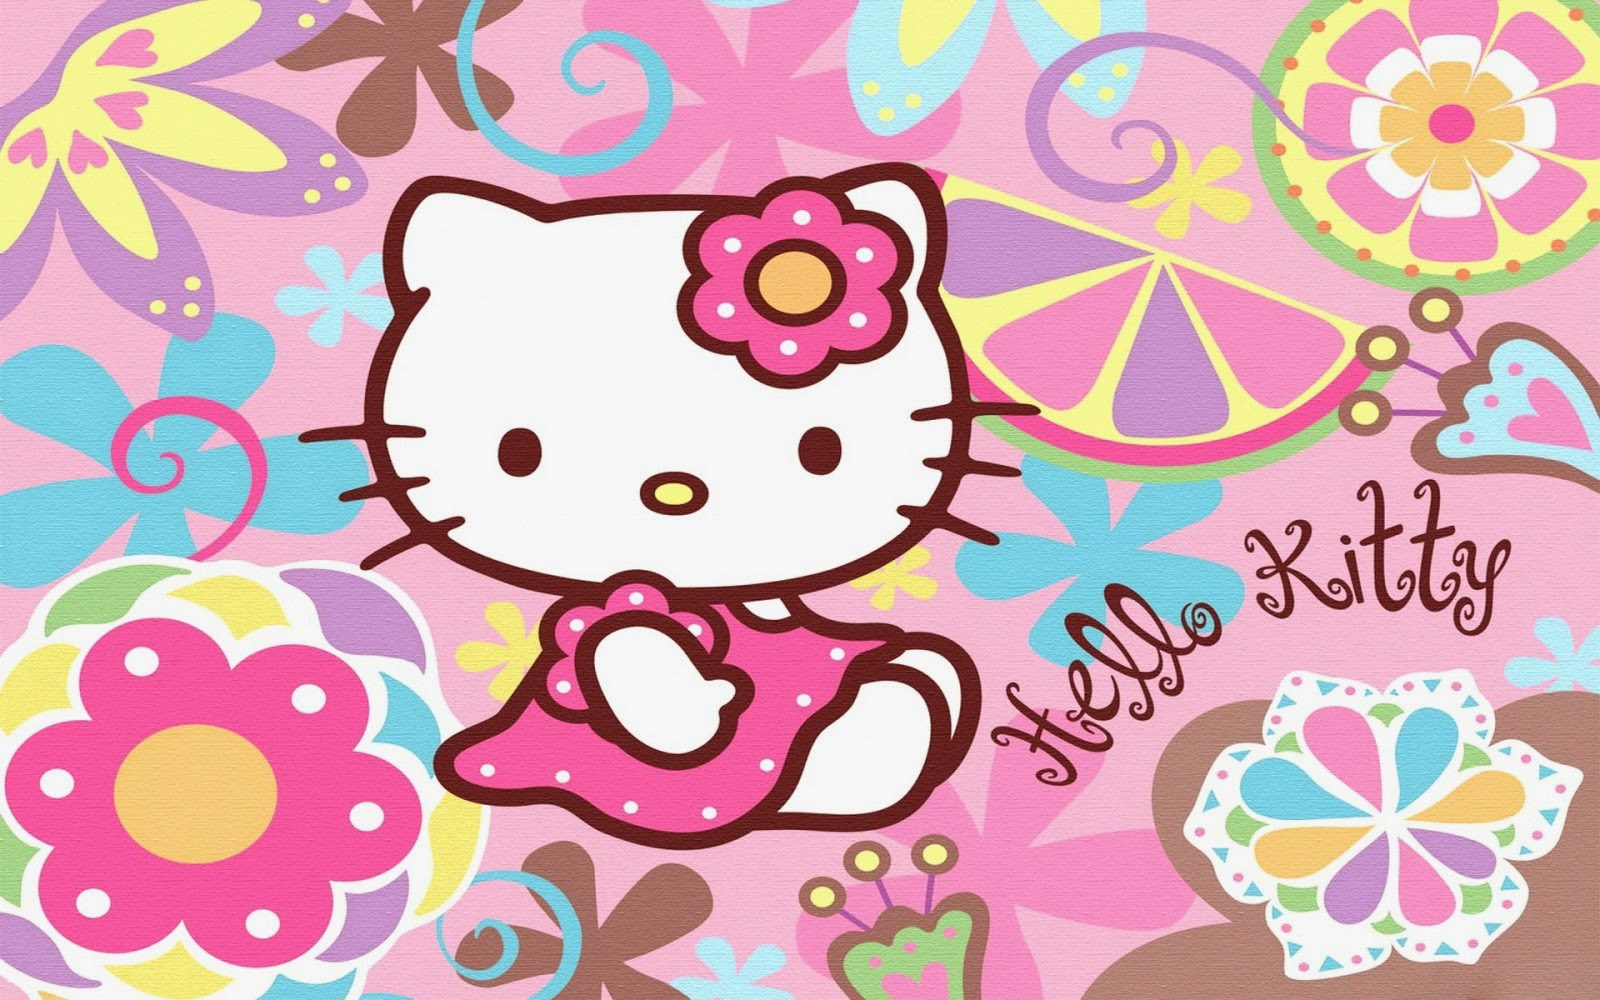 KUMPULAN GAMBAR WALLPAPER HELLO KITTY Gambar Lucu Hello Kitty